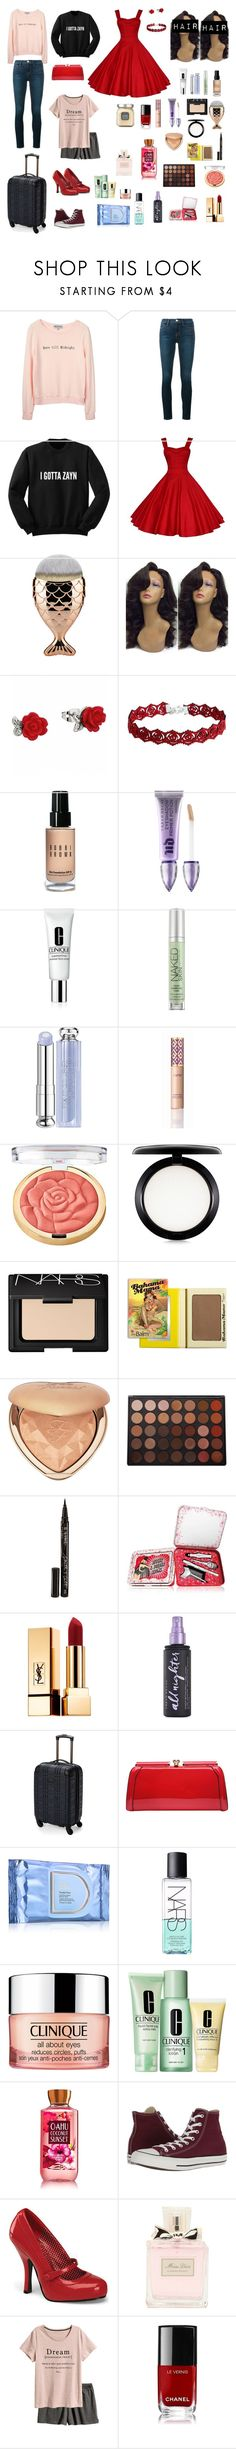 """Just one perfect day...."" by me1ody ❤ liked on Polyvore featuring Wildfox, Frame, Bobbi Brown Cosmetics, Urban Decay, Clinique, Christian Dior, tarte, Milani, MAC Cosmetics and NARS Cosmetics"